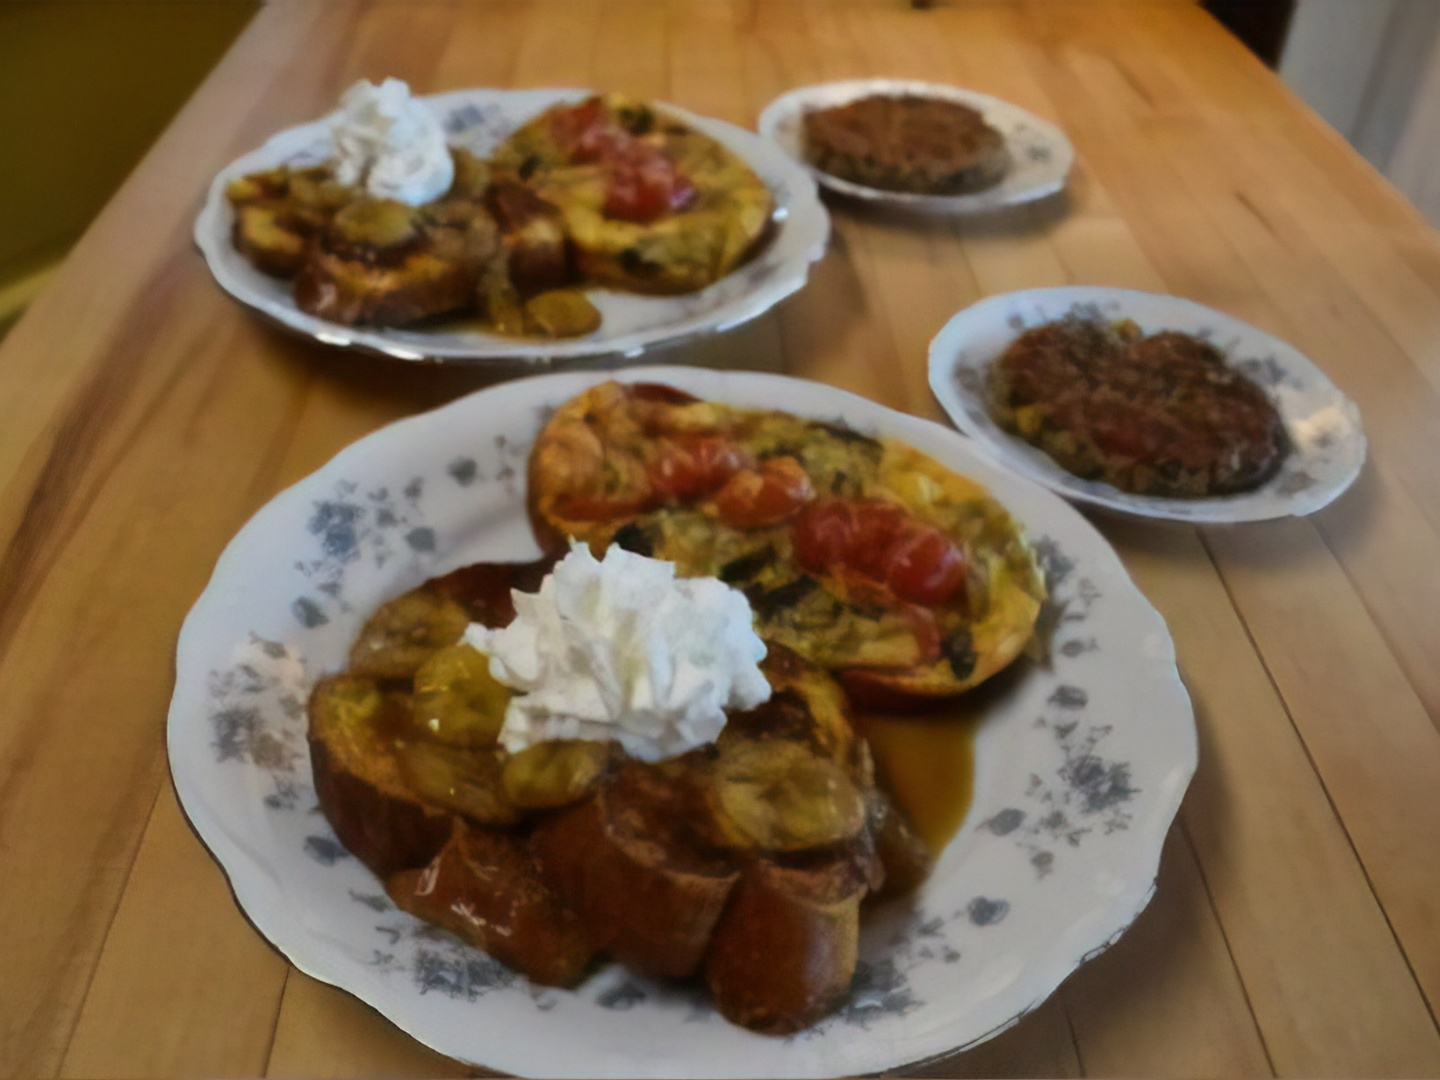 A wooden table topped with plates of food on a plate at Apple Bin Inn Bed and Breakfast.